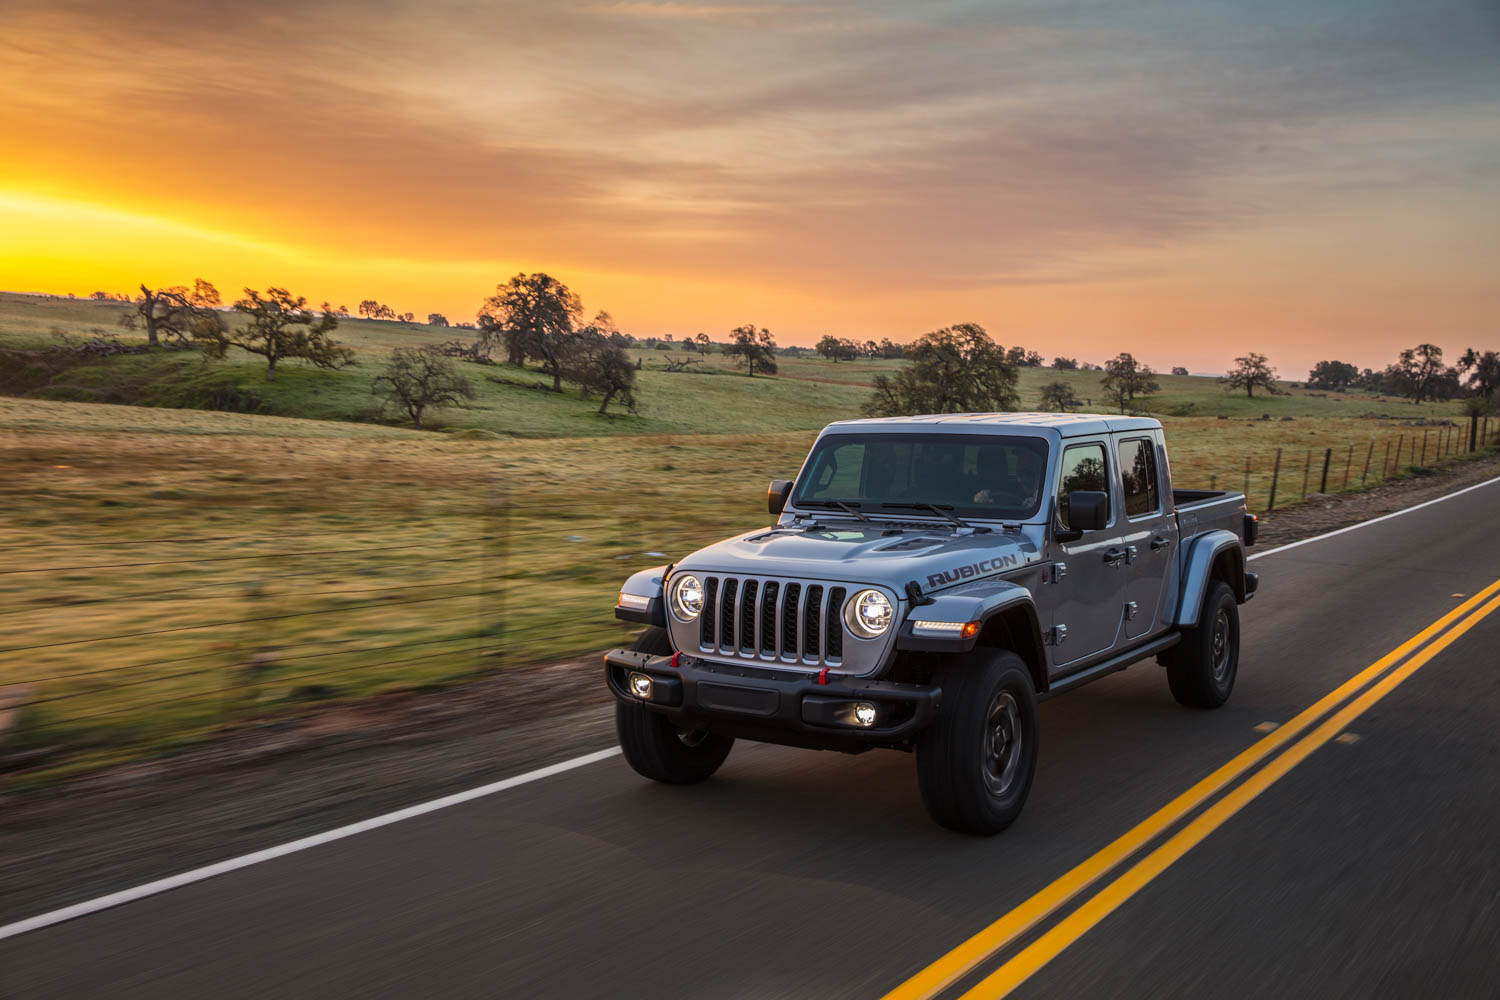 2020 Jeep Gladiator front 3/4 at sunset